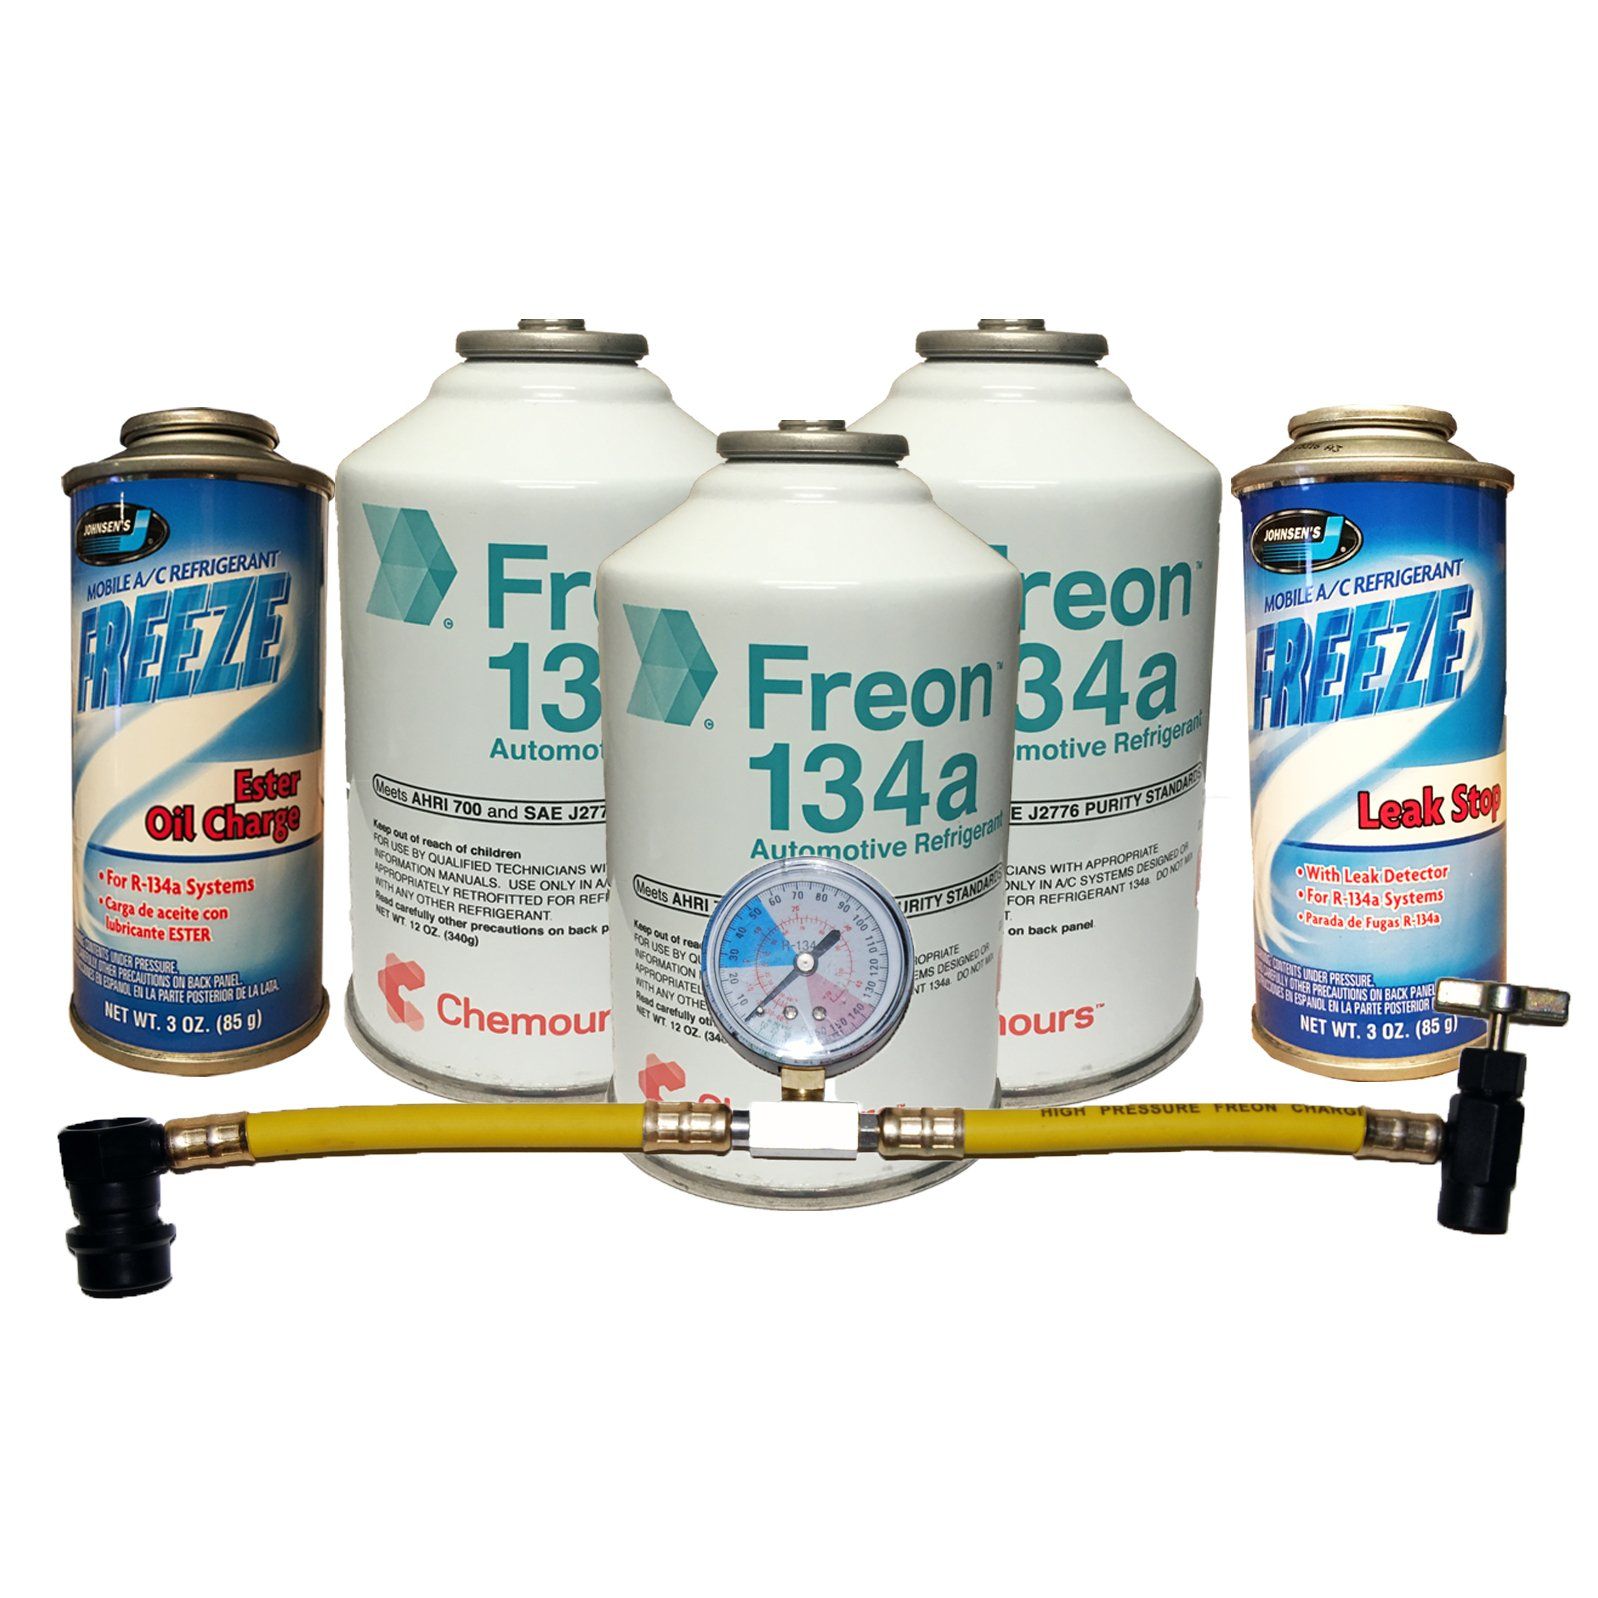 Complete AC Car Kit Refrigerant, 3 Cans DuPont Chemours R-134a, Oil Charge, Stop Leak & Can Tap with Gauge